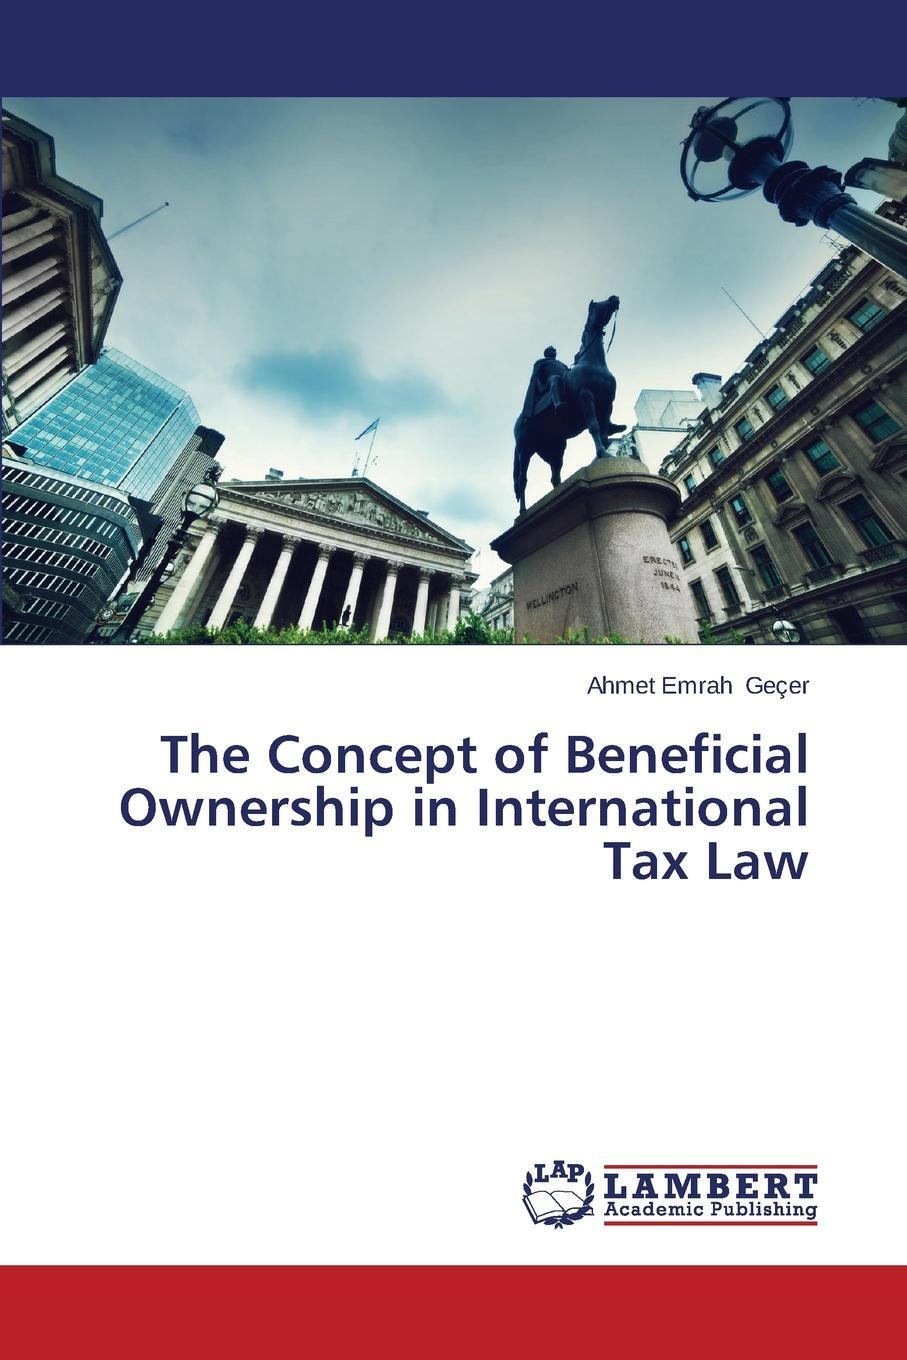 The Concept of Beneficial Ownership in International Tax Law. Ge?er Ahmet Emrah